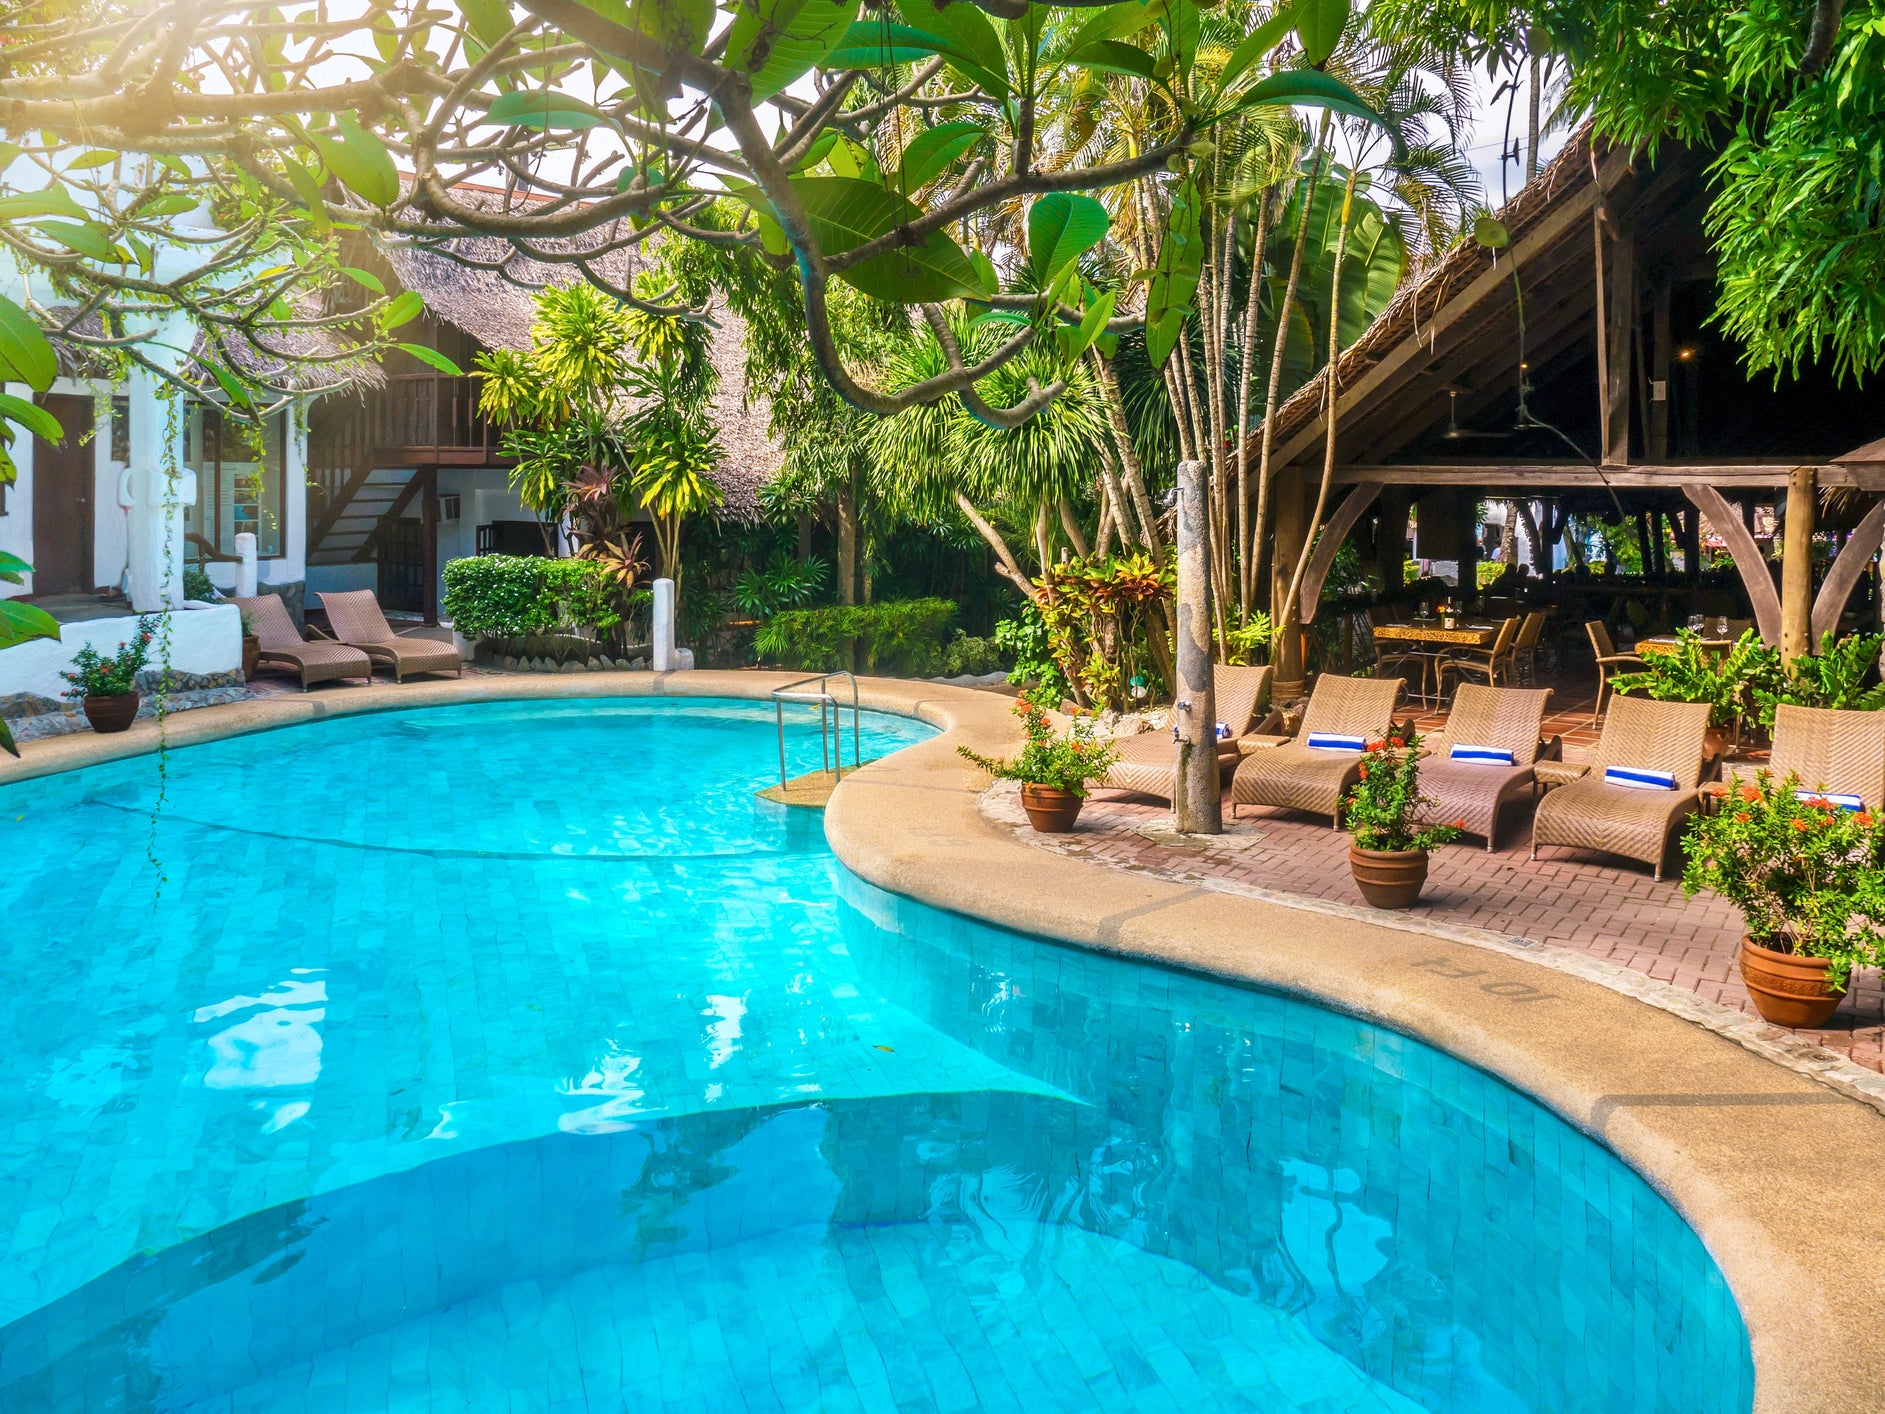 Should You Add A Pool To Your Home Millionacres